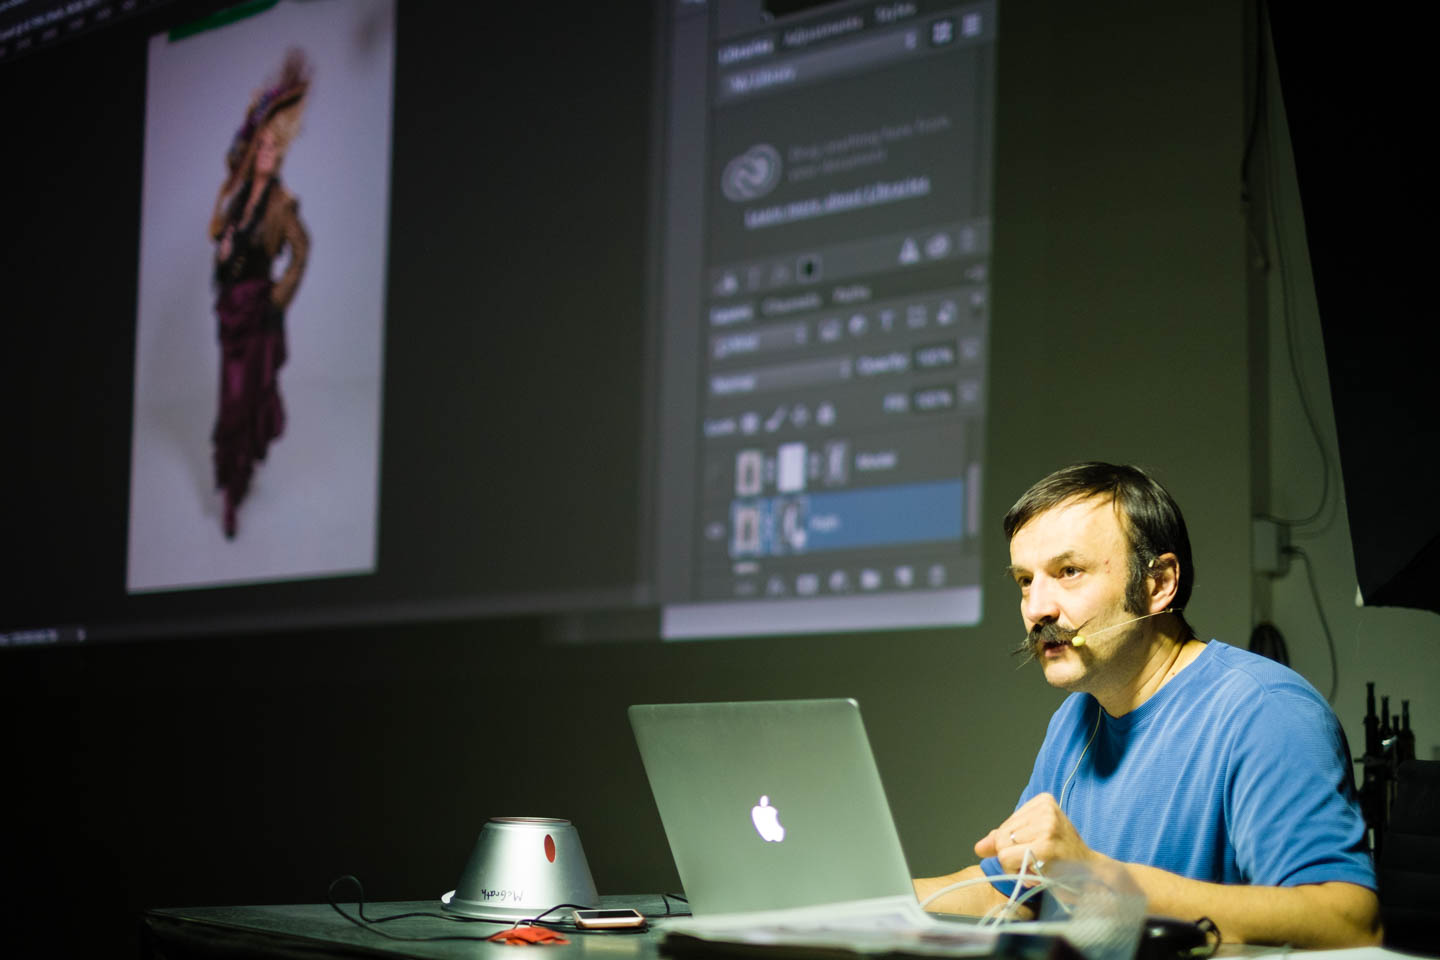 Vladimir teaches Photoshop compositing